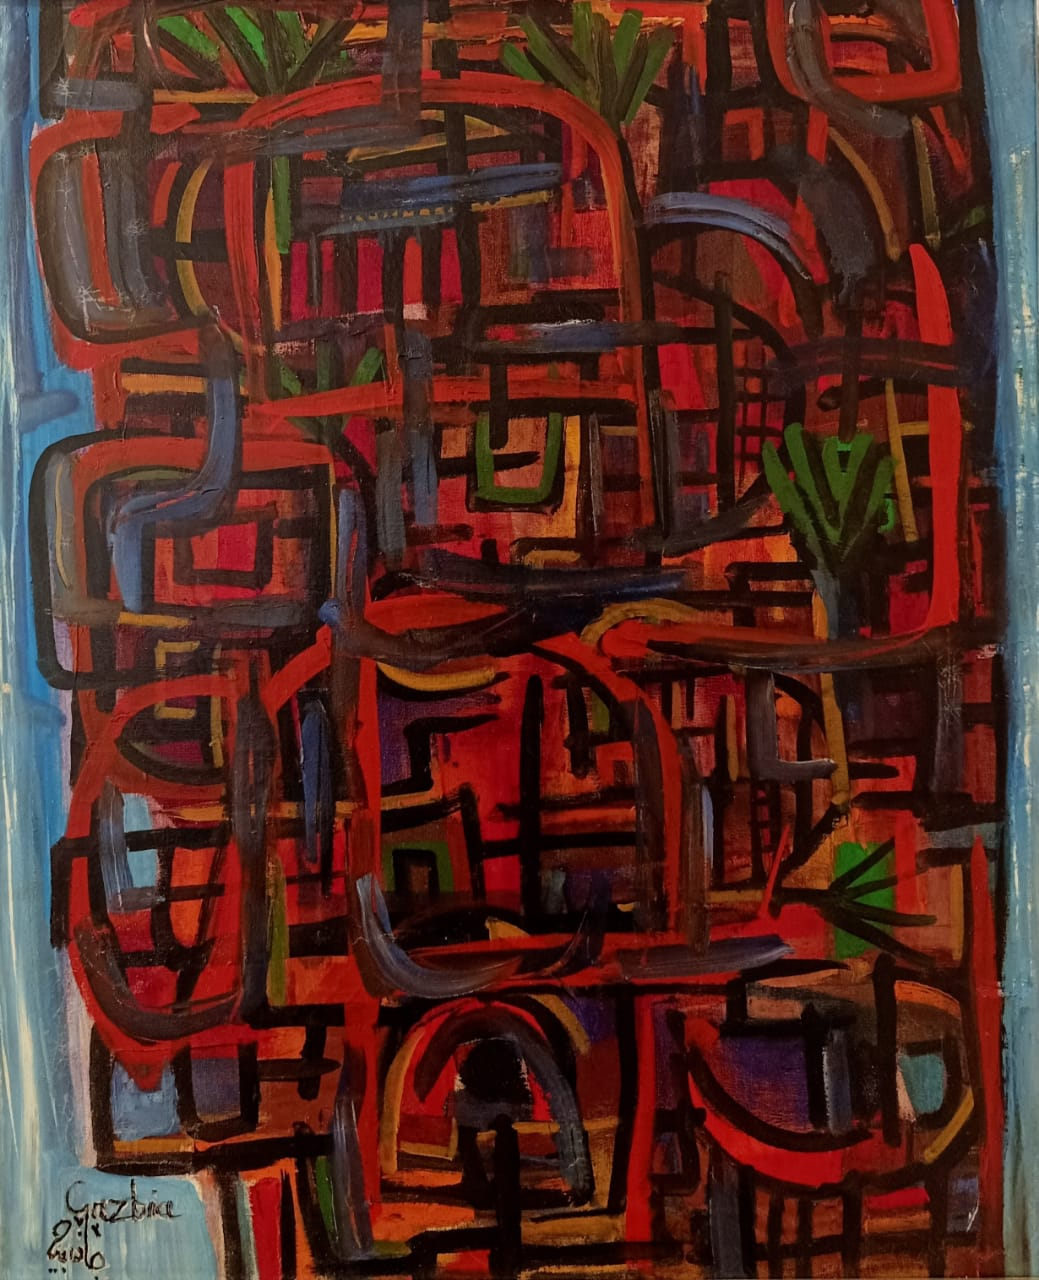 GAZBIA SIRRY (1925) Untitled, 1973 60 x 73 cm Oil on canvas. Signed and dated 1973 lower left